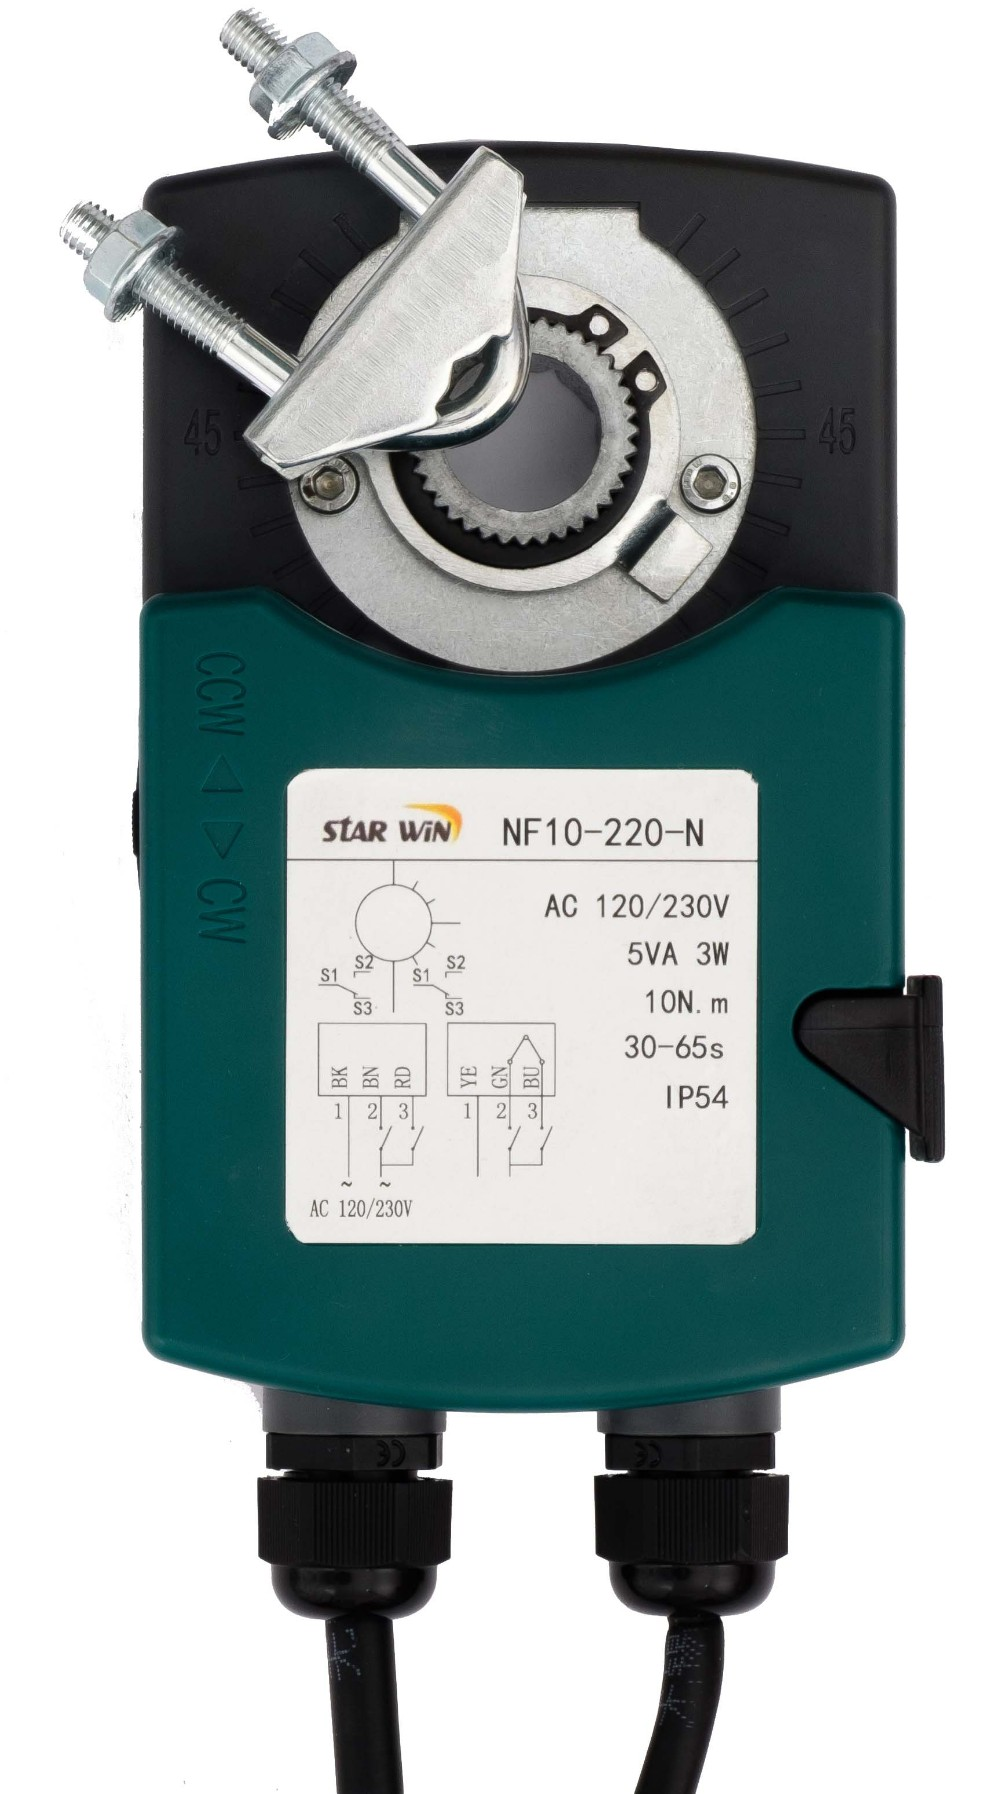 NF10-220-N damper actuator on/off control 10Nm